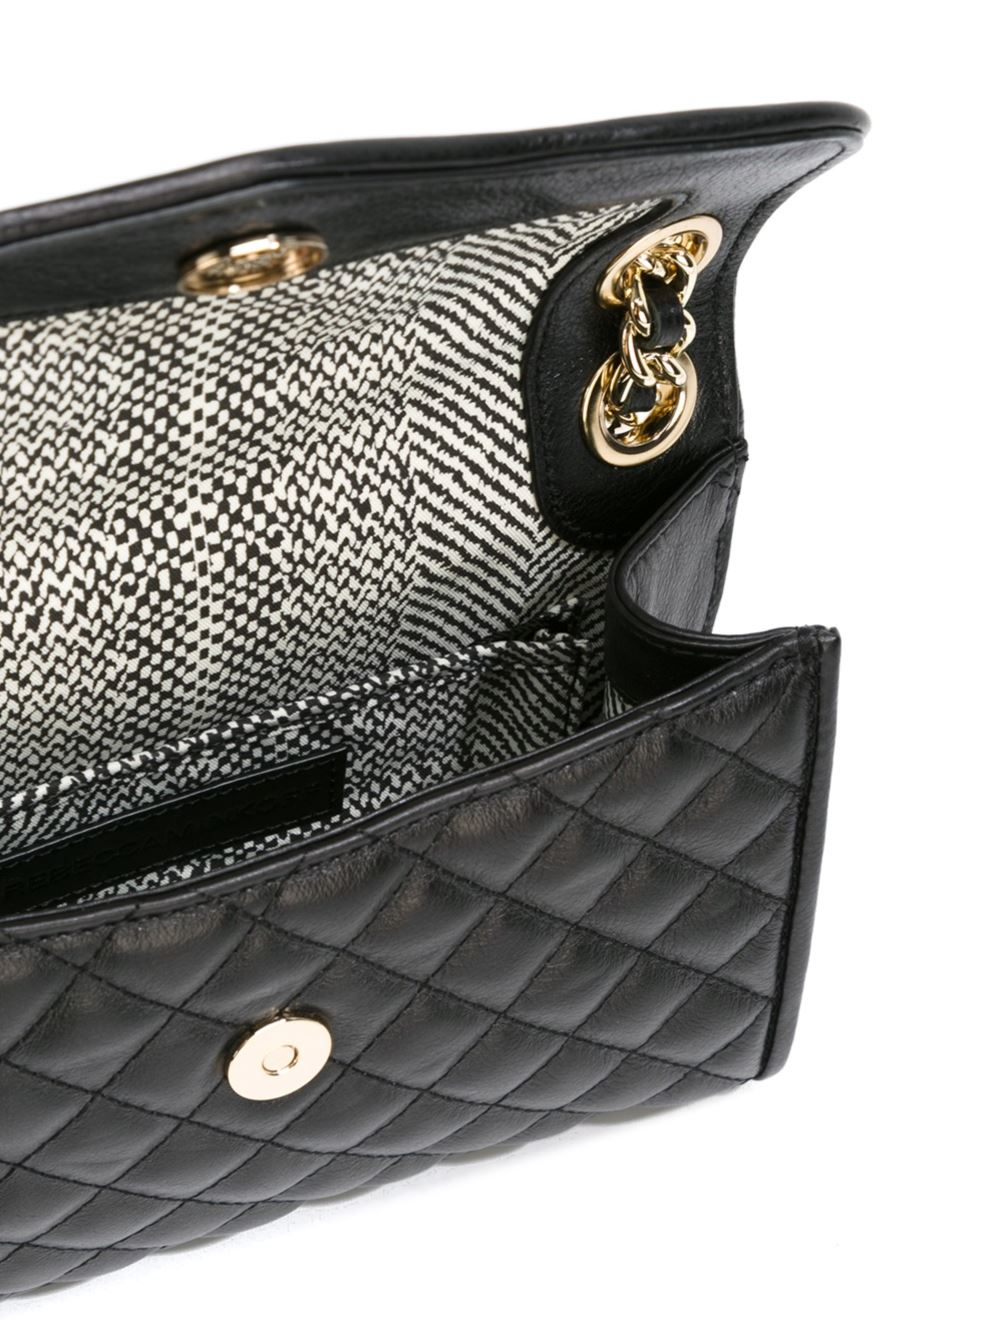 Rebecca minkoff Quilted Crossbody Bag in Black